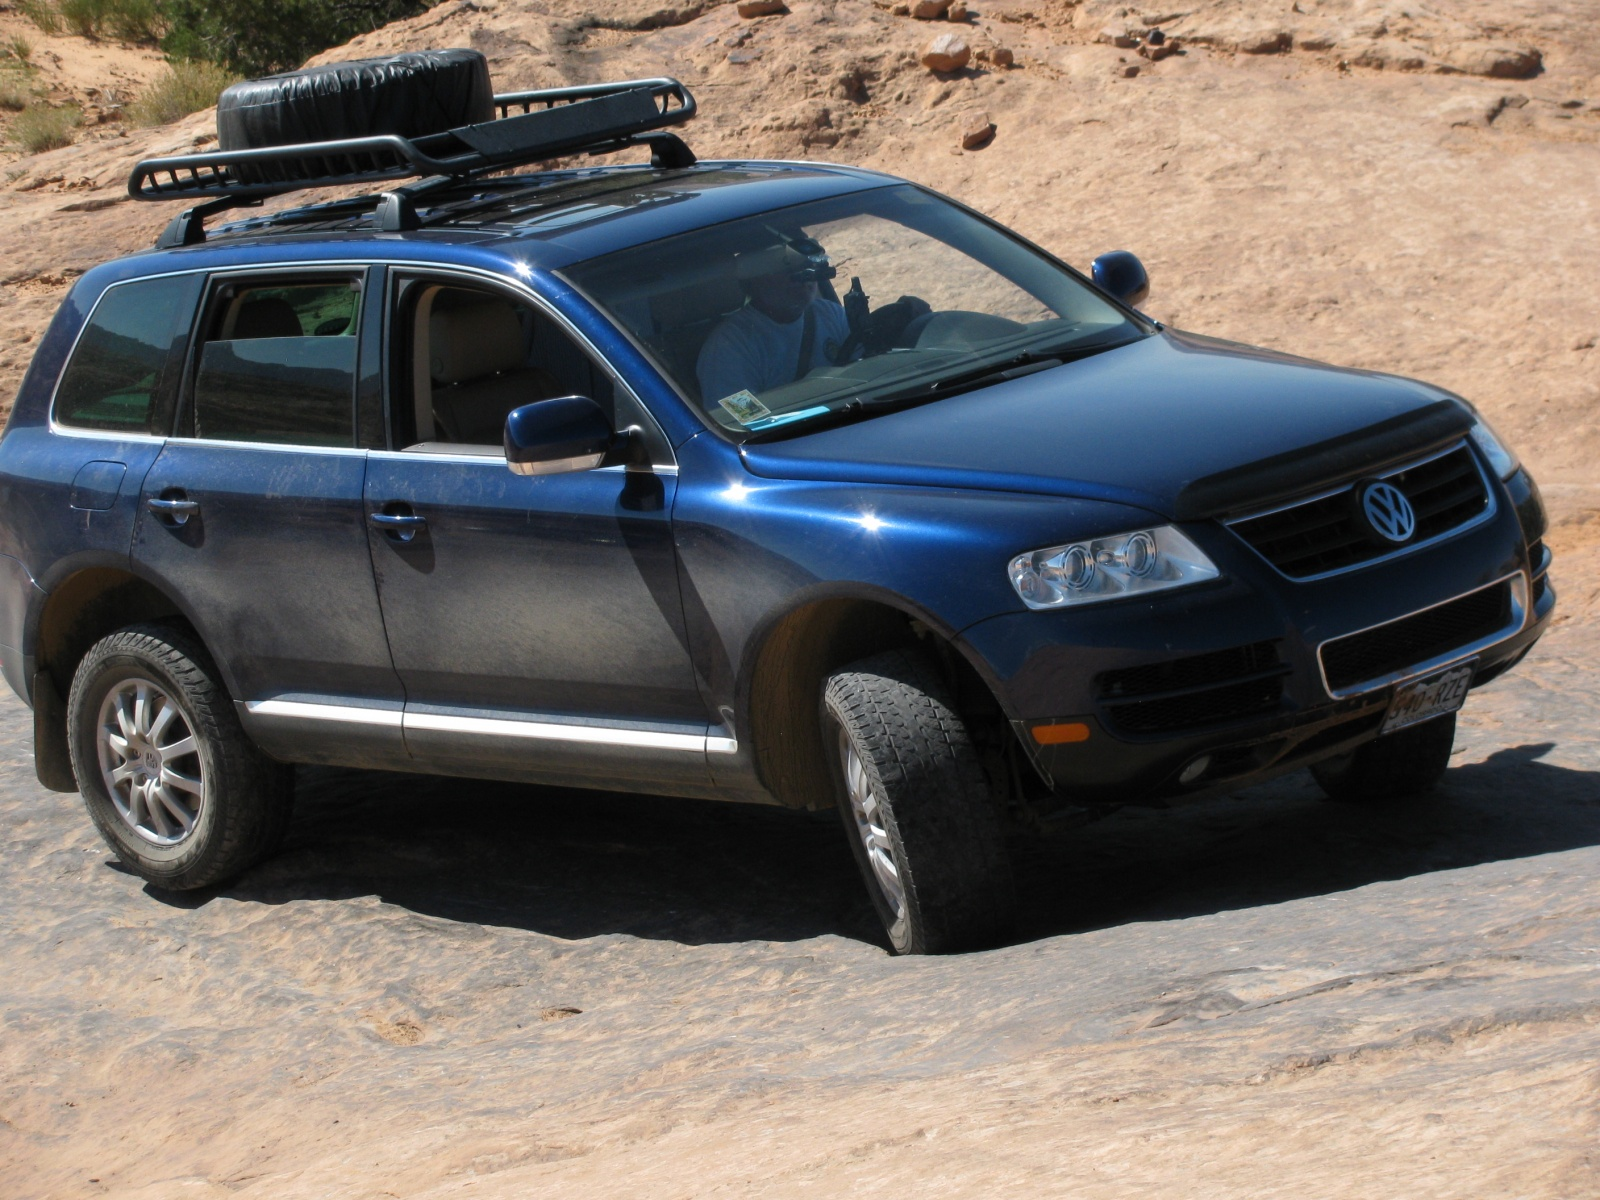 Vw Touareg Roof Rack Removal Best Roof 2018